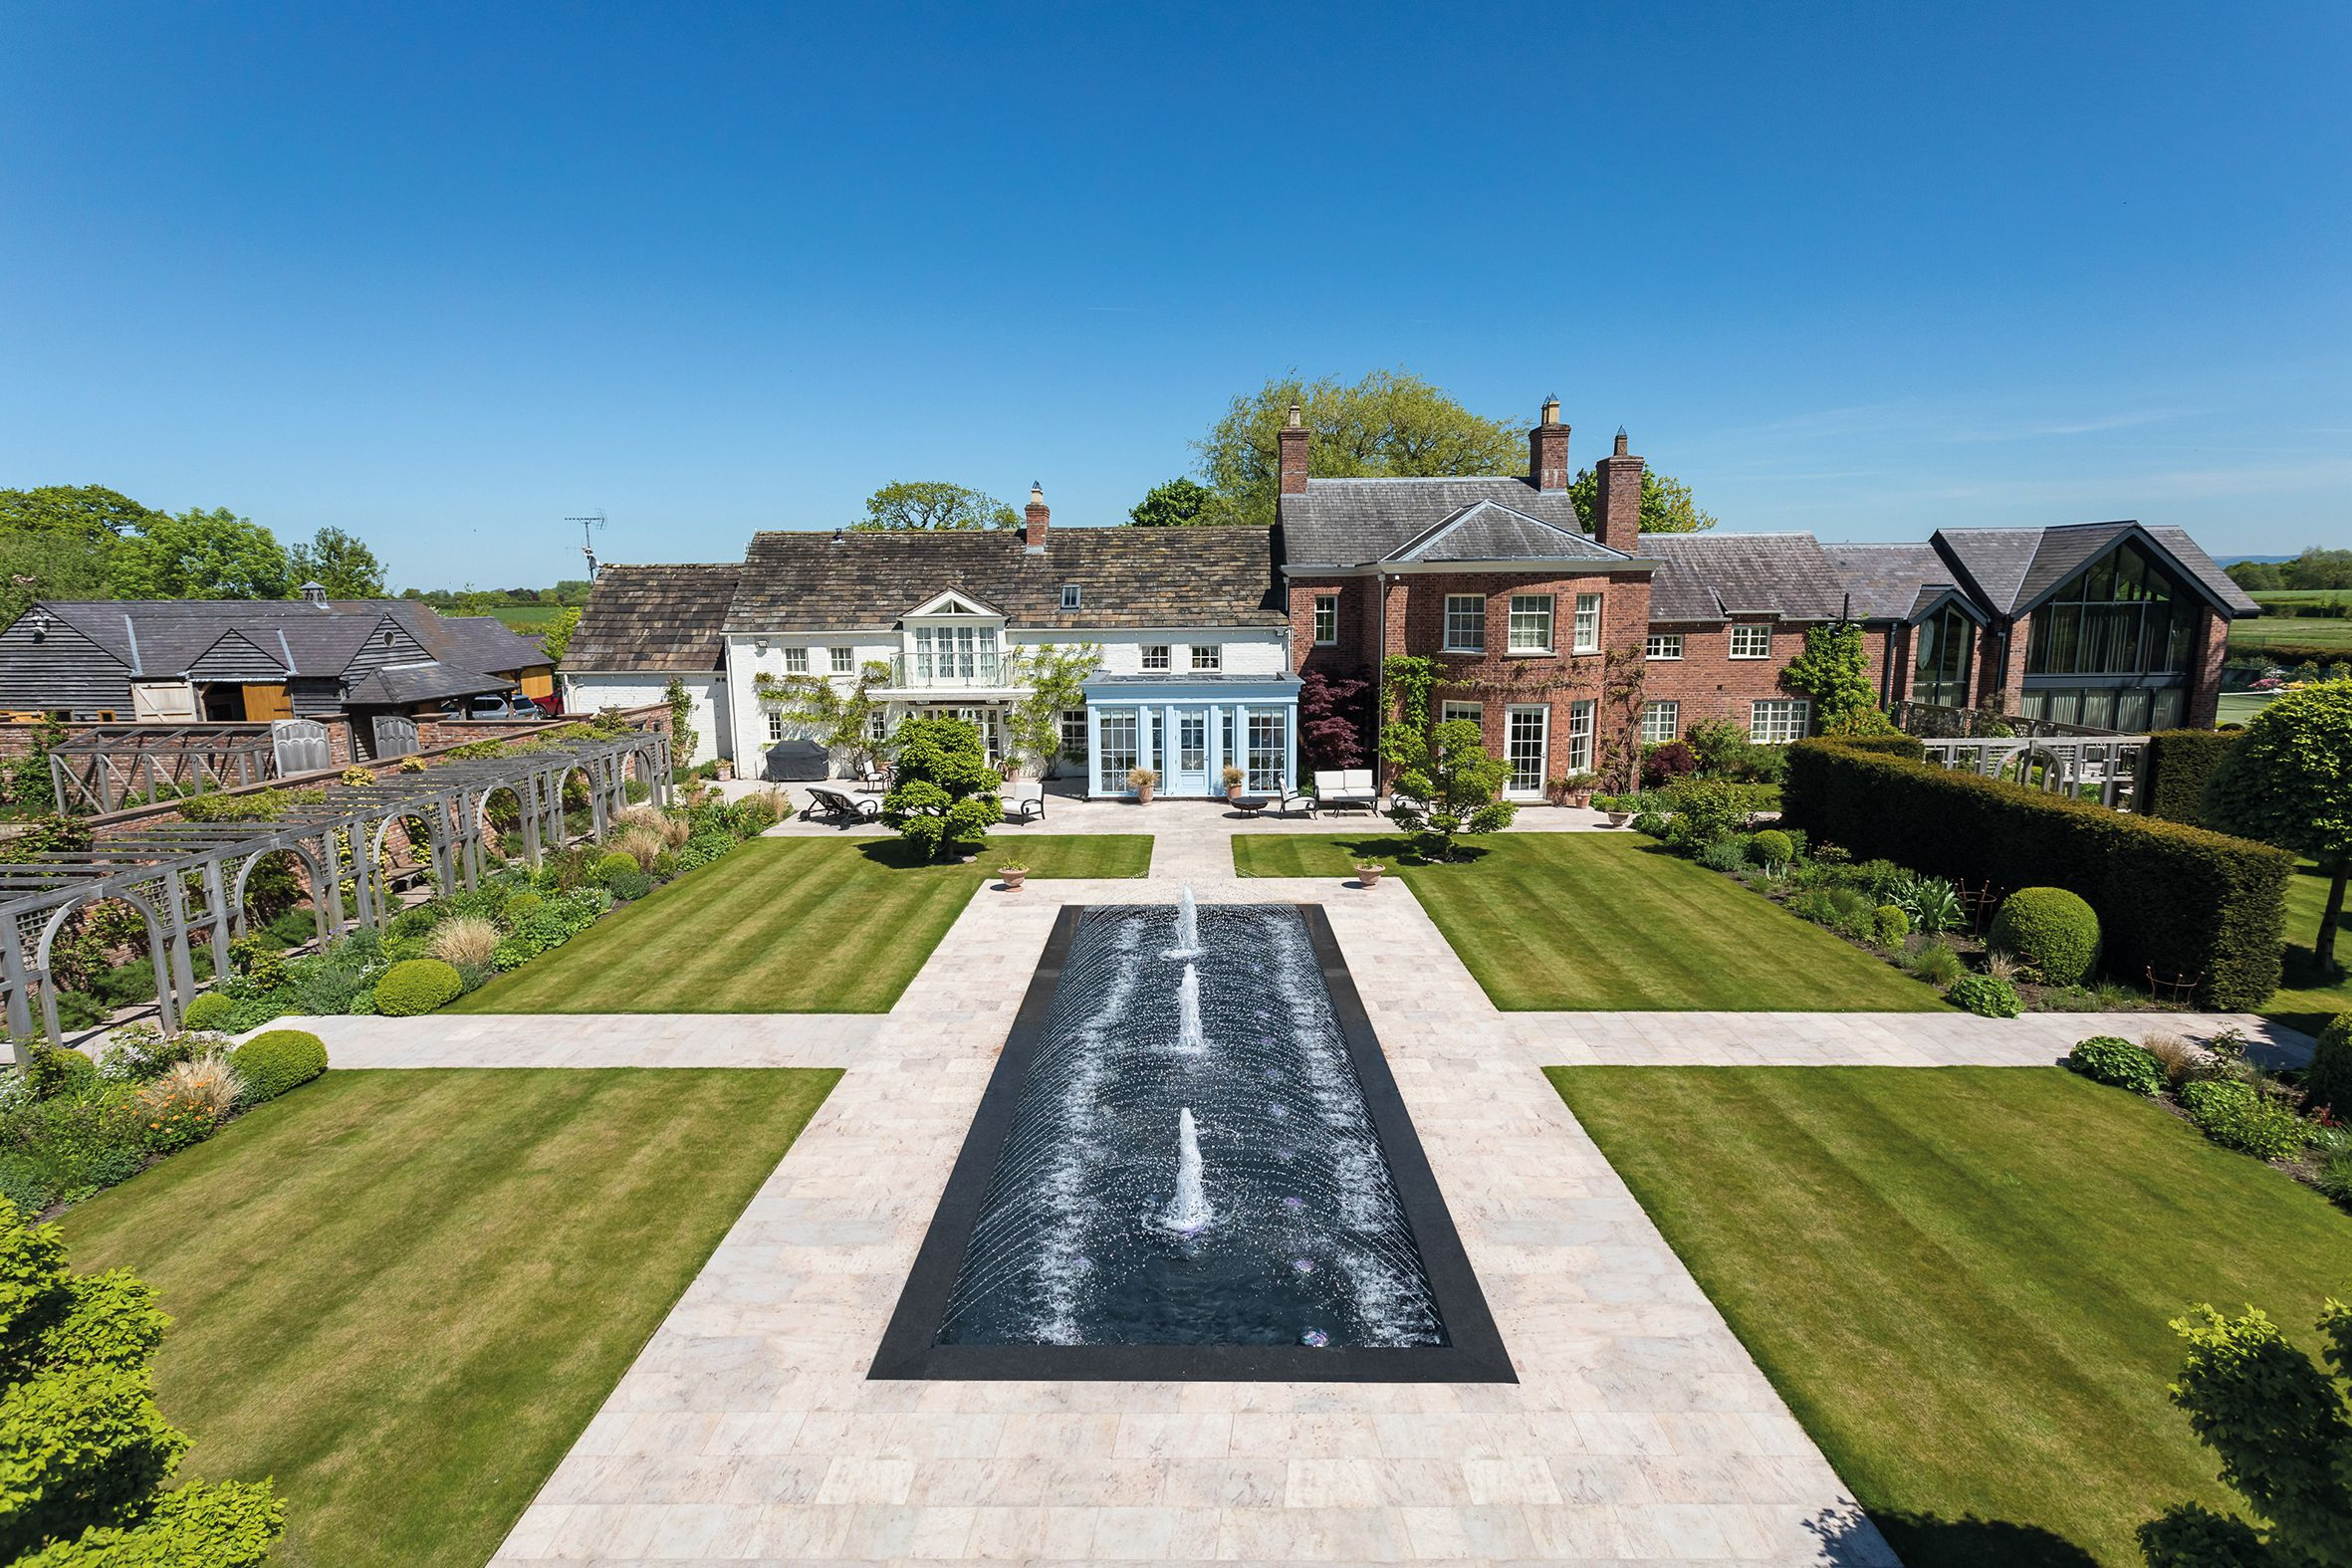 Exquisite Georgian property with award-winning gardens for sale in Cheshire